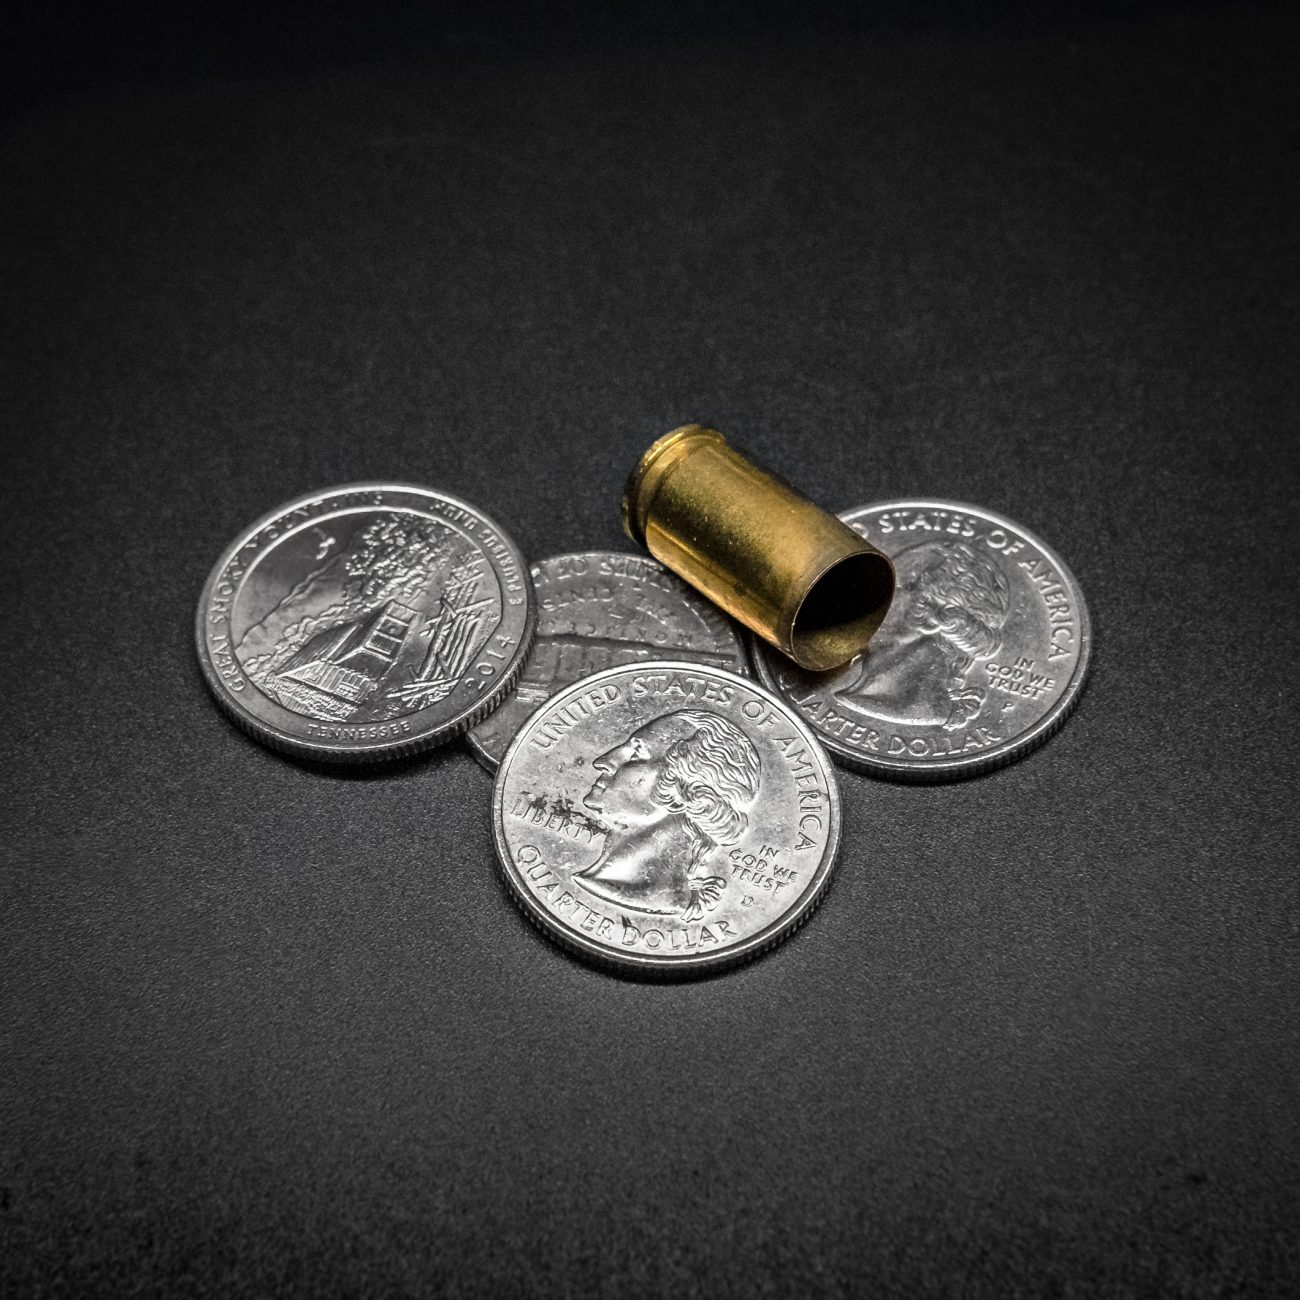 Photograph showing three quarter coins and a spent 9mm round casing